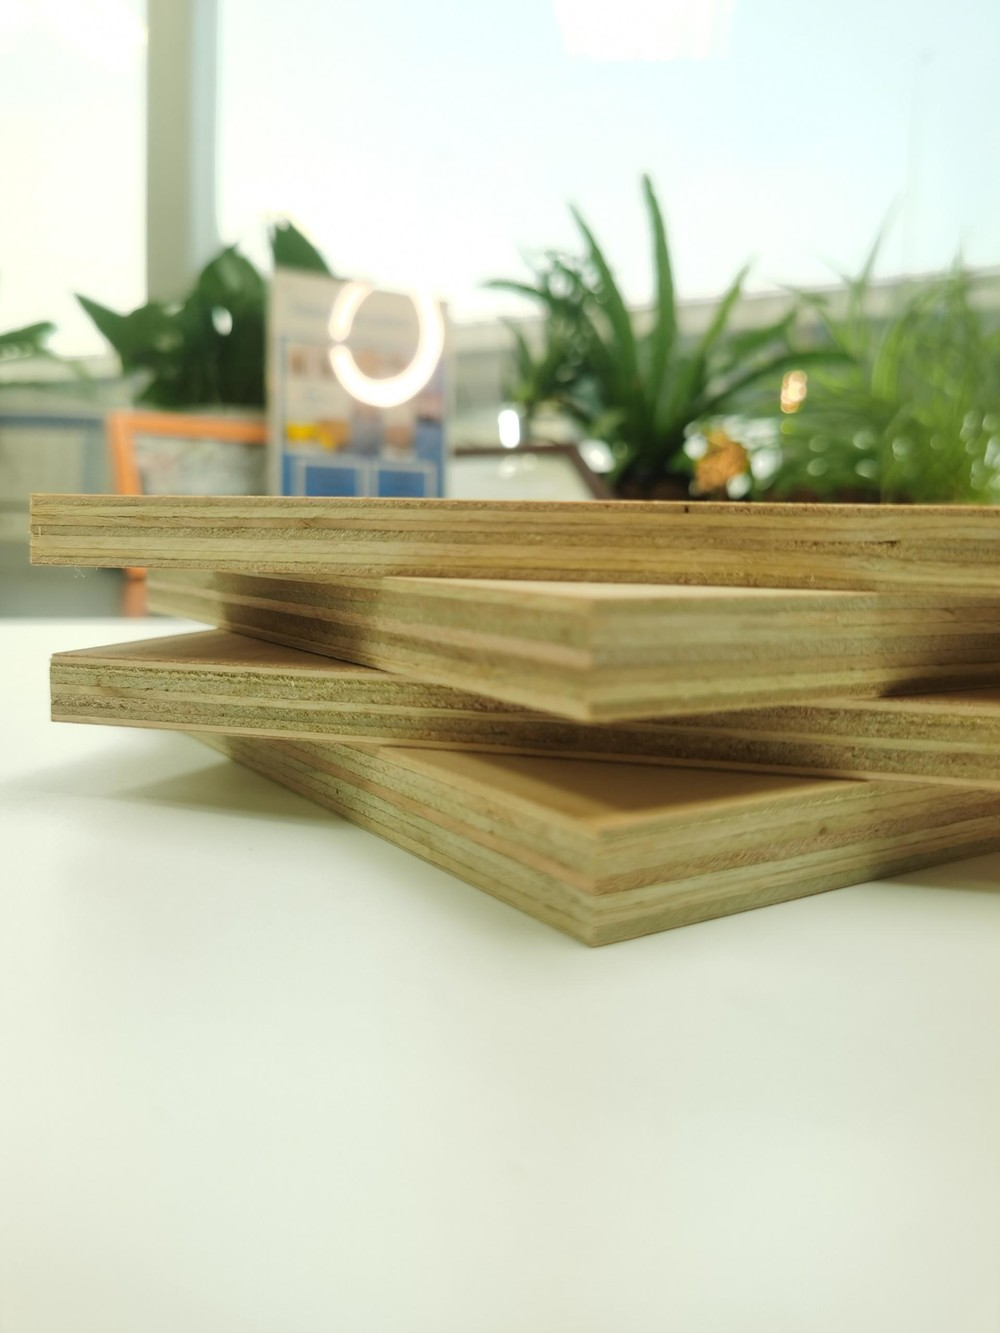 Qinge Cheap Price Construction Grade Plywood 3/4 5/8 Inch Waterproof Marine CDX Pine Plywood View More